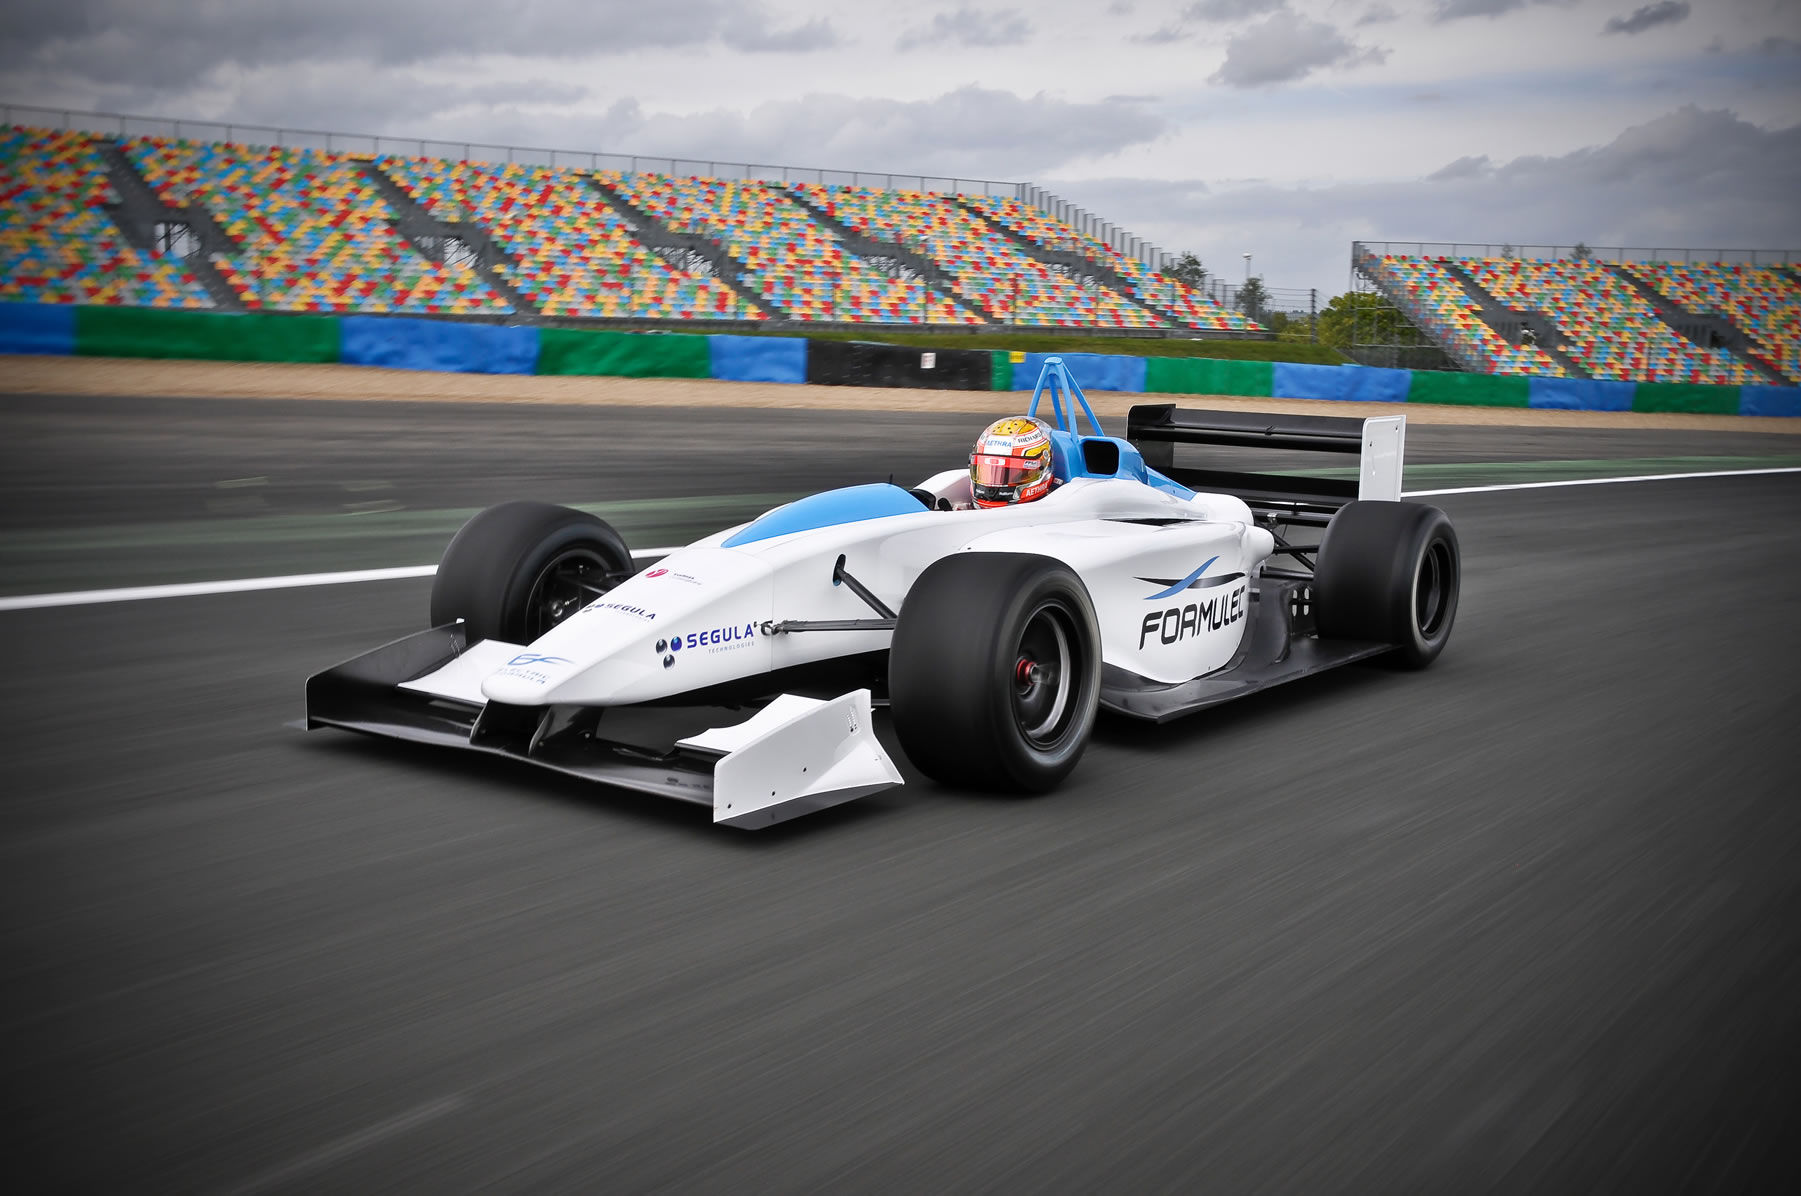 Fastest Electric Race Car The Formulec EF01 sets world record HD